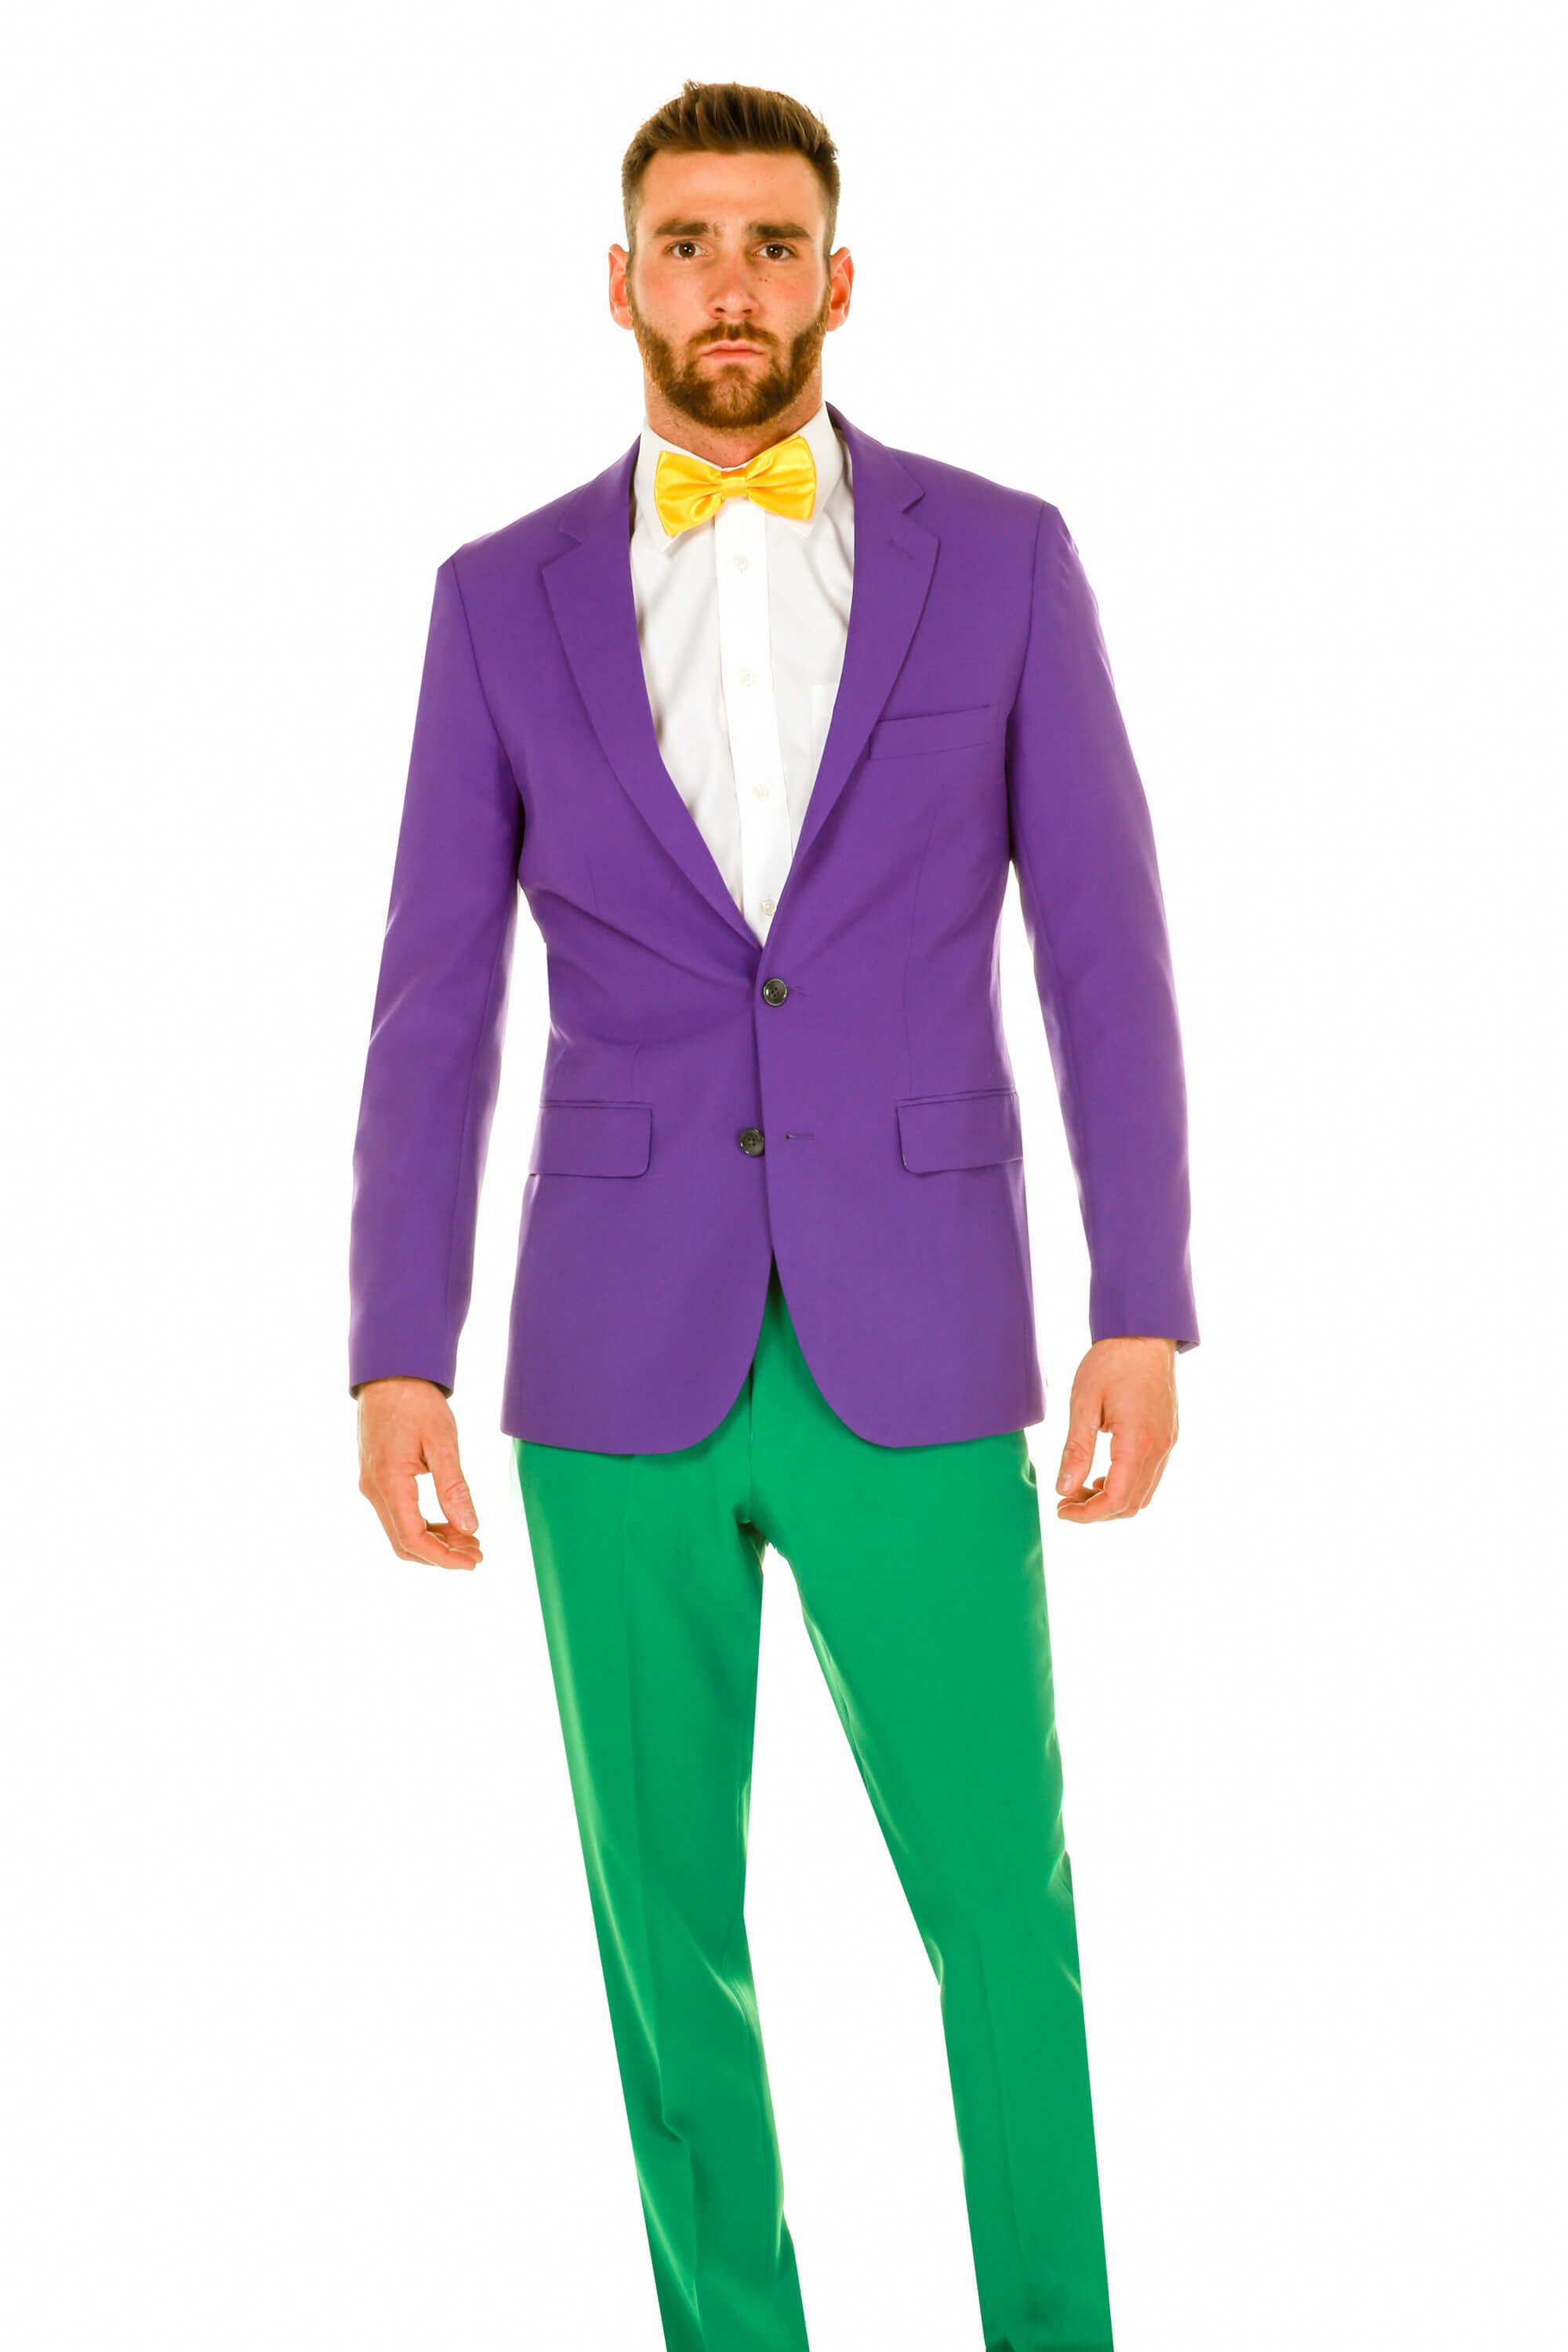 4792273cbd61 Purple, Yellow, and Green Suit   The All of the Colors of Bourbon Street